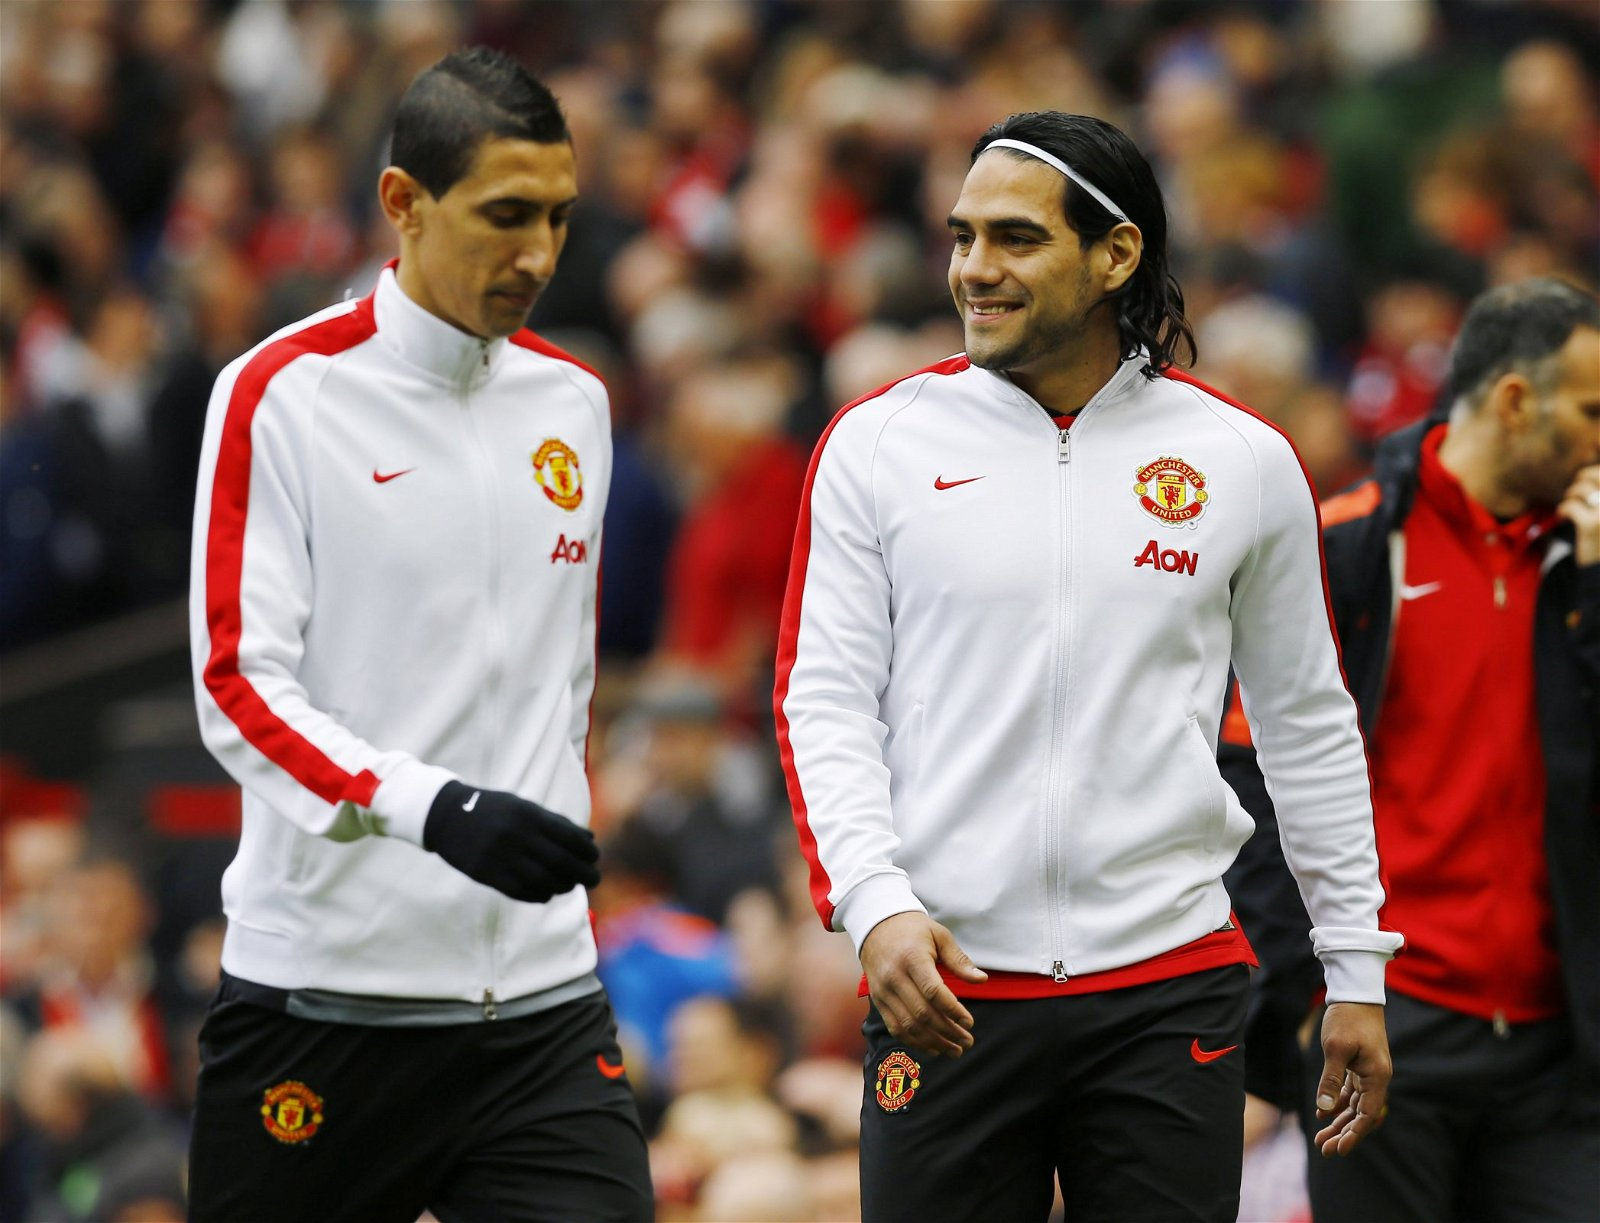 Angel Di Maria and Radamel Falcao in their Man United tracksuits